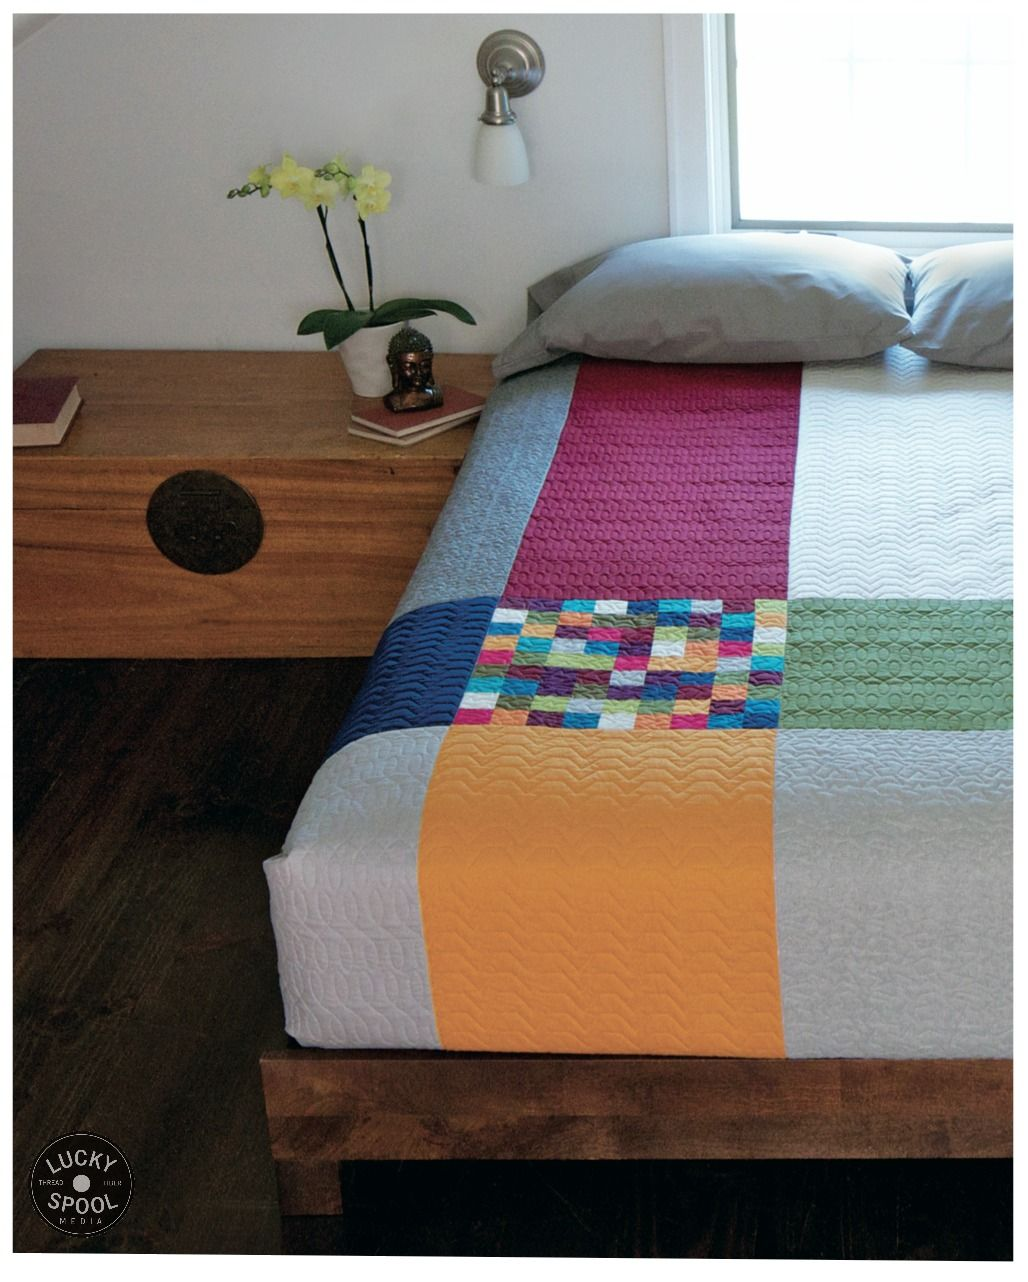 Minimal Style bedroom and quilt version 1 with patchwork detail from April Rosenthal's book. Photo (c) Gale Zucker